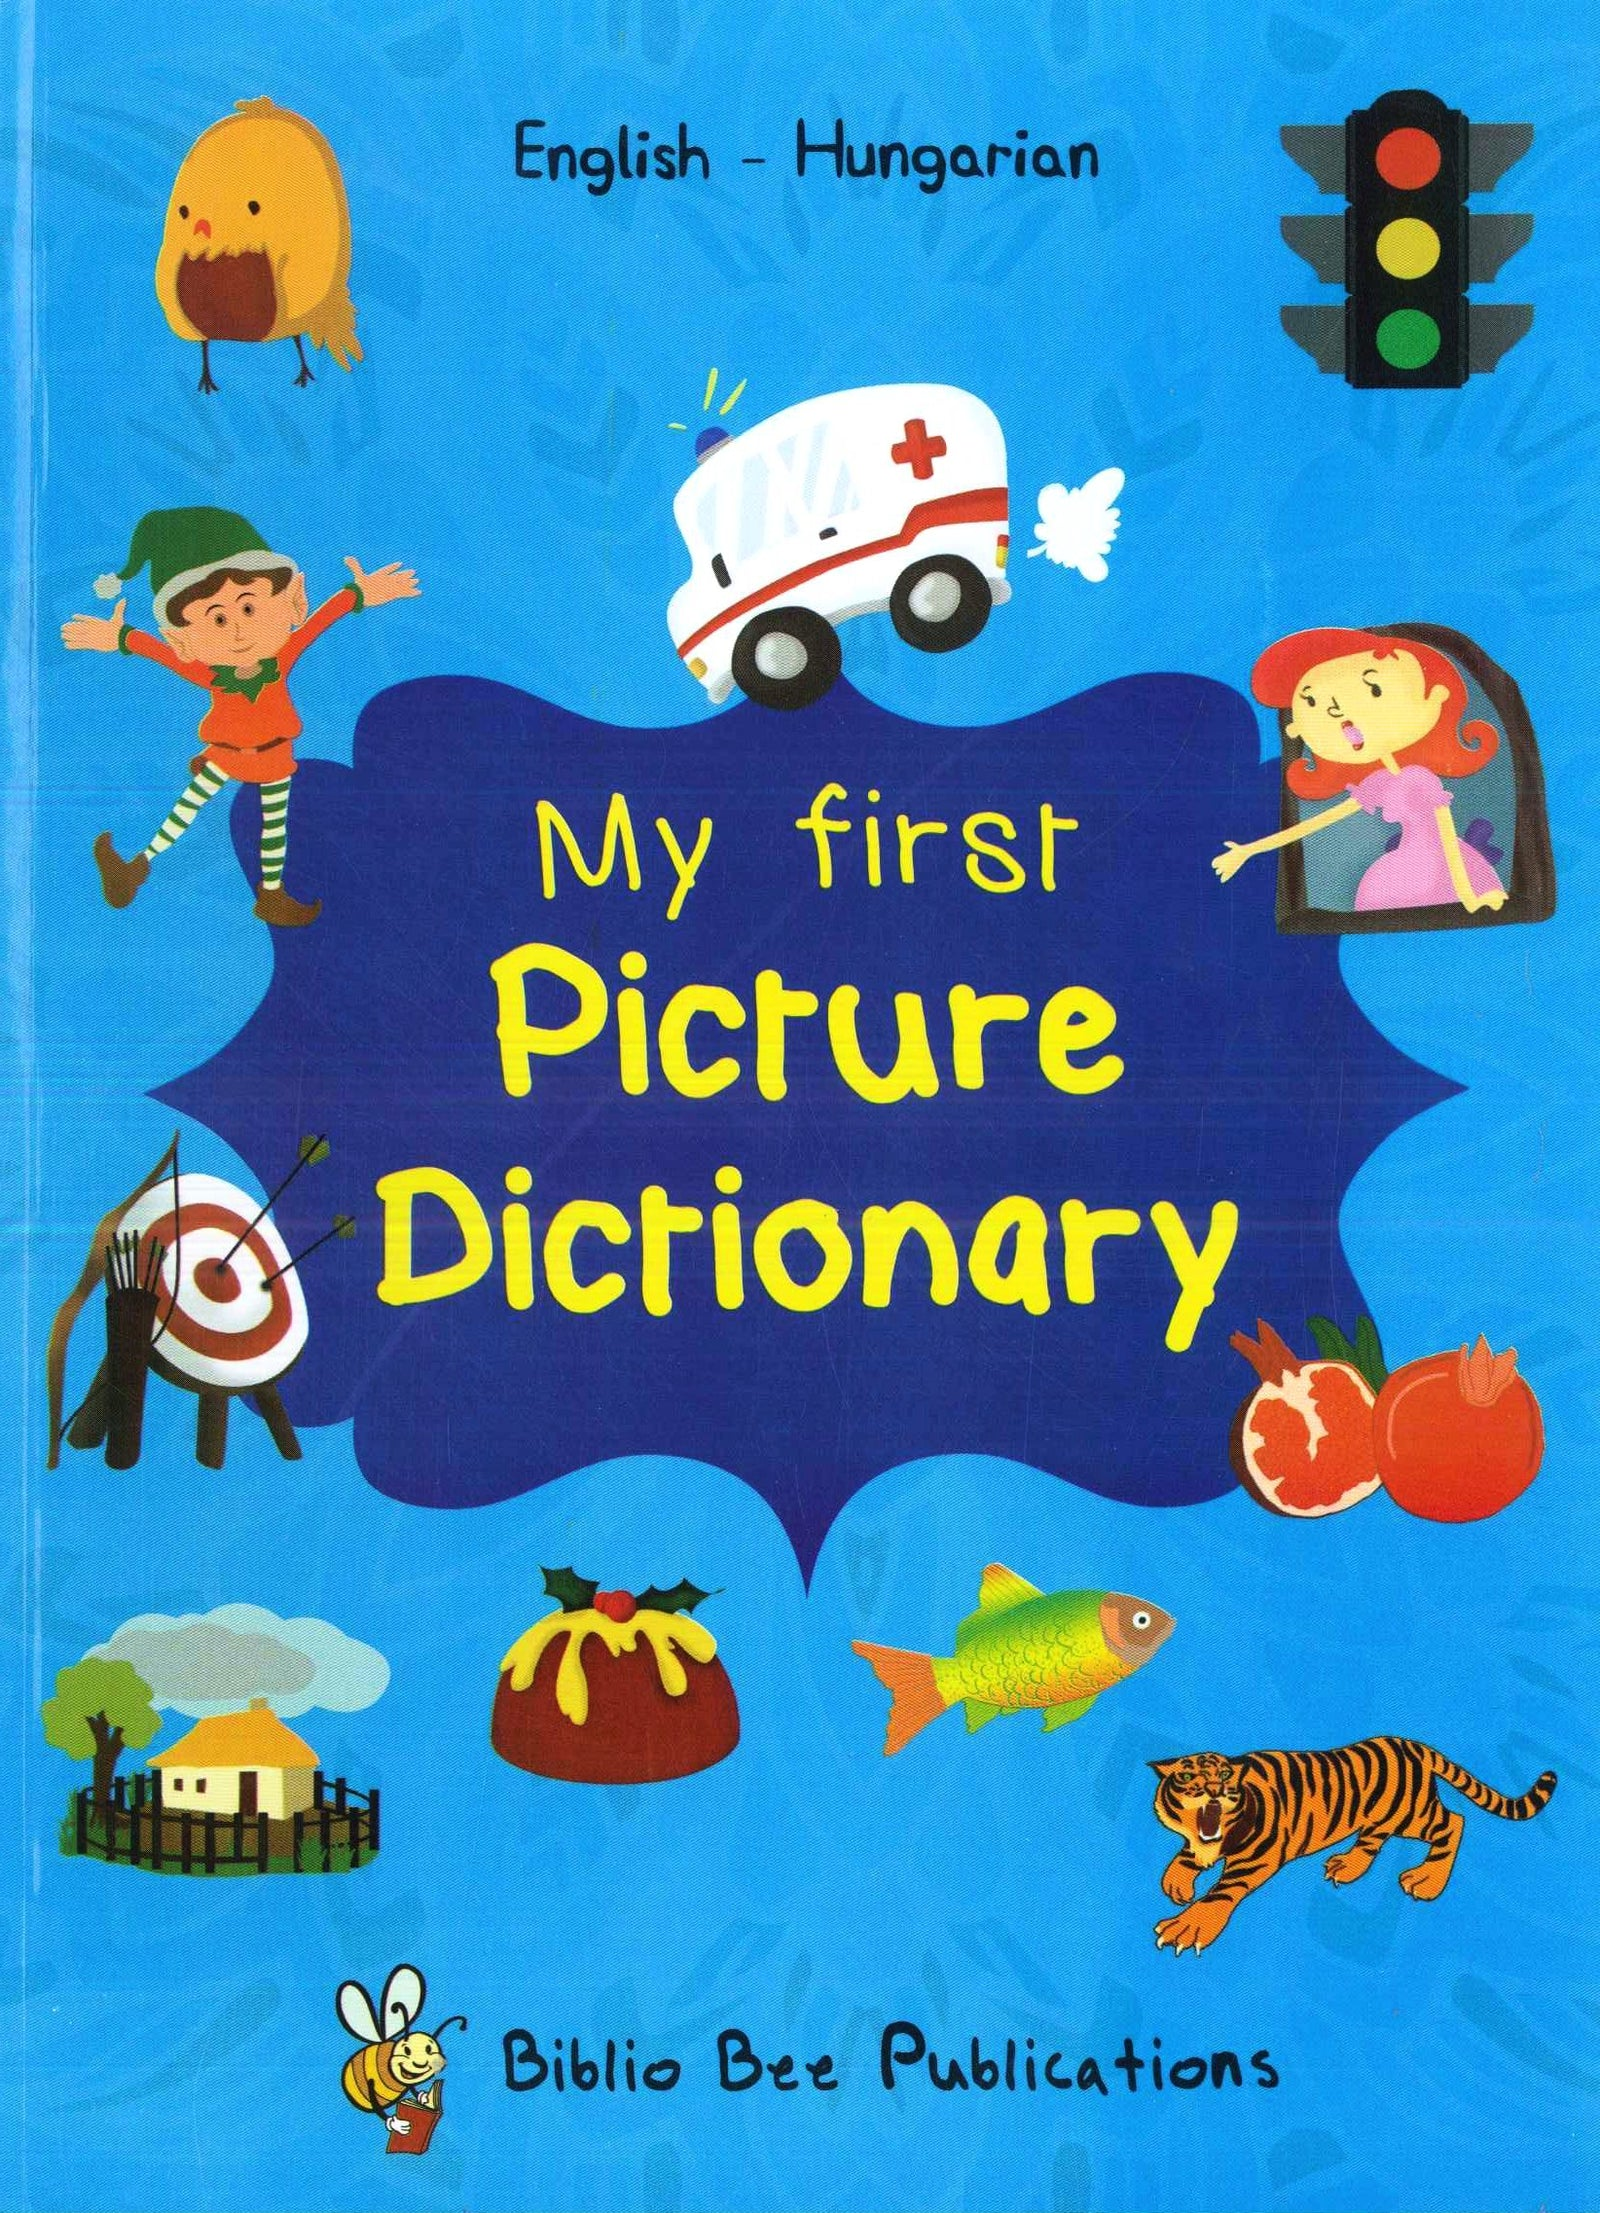 My First Picture Dictionary: English-Hungarian - 9781908357281